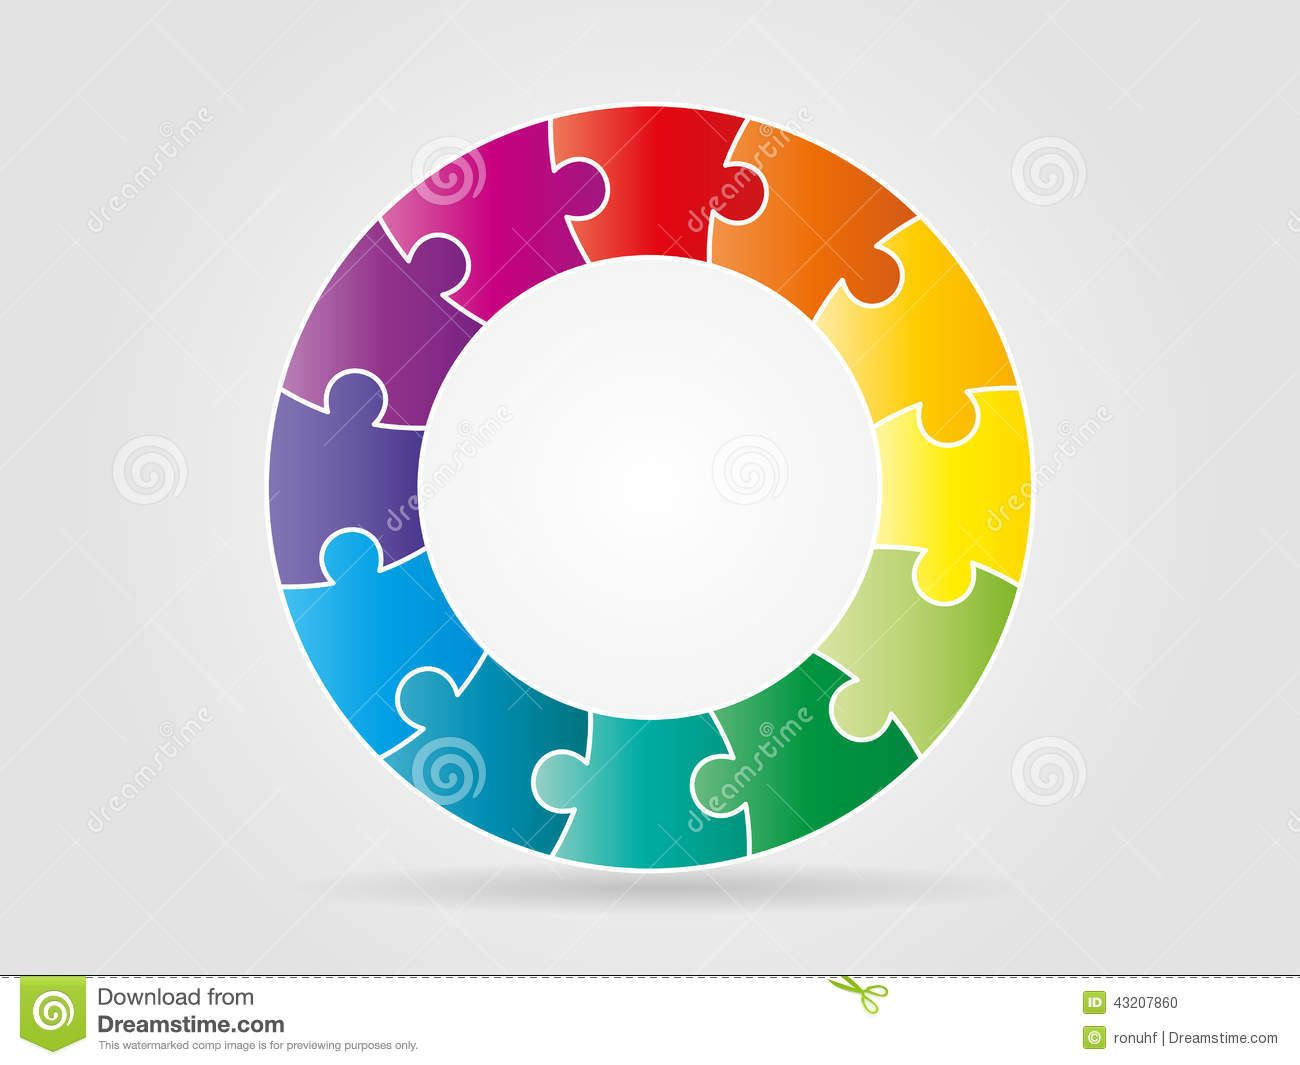 ColorfulRainbowPuzzlePiecesFormingCircleVectorGraphic